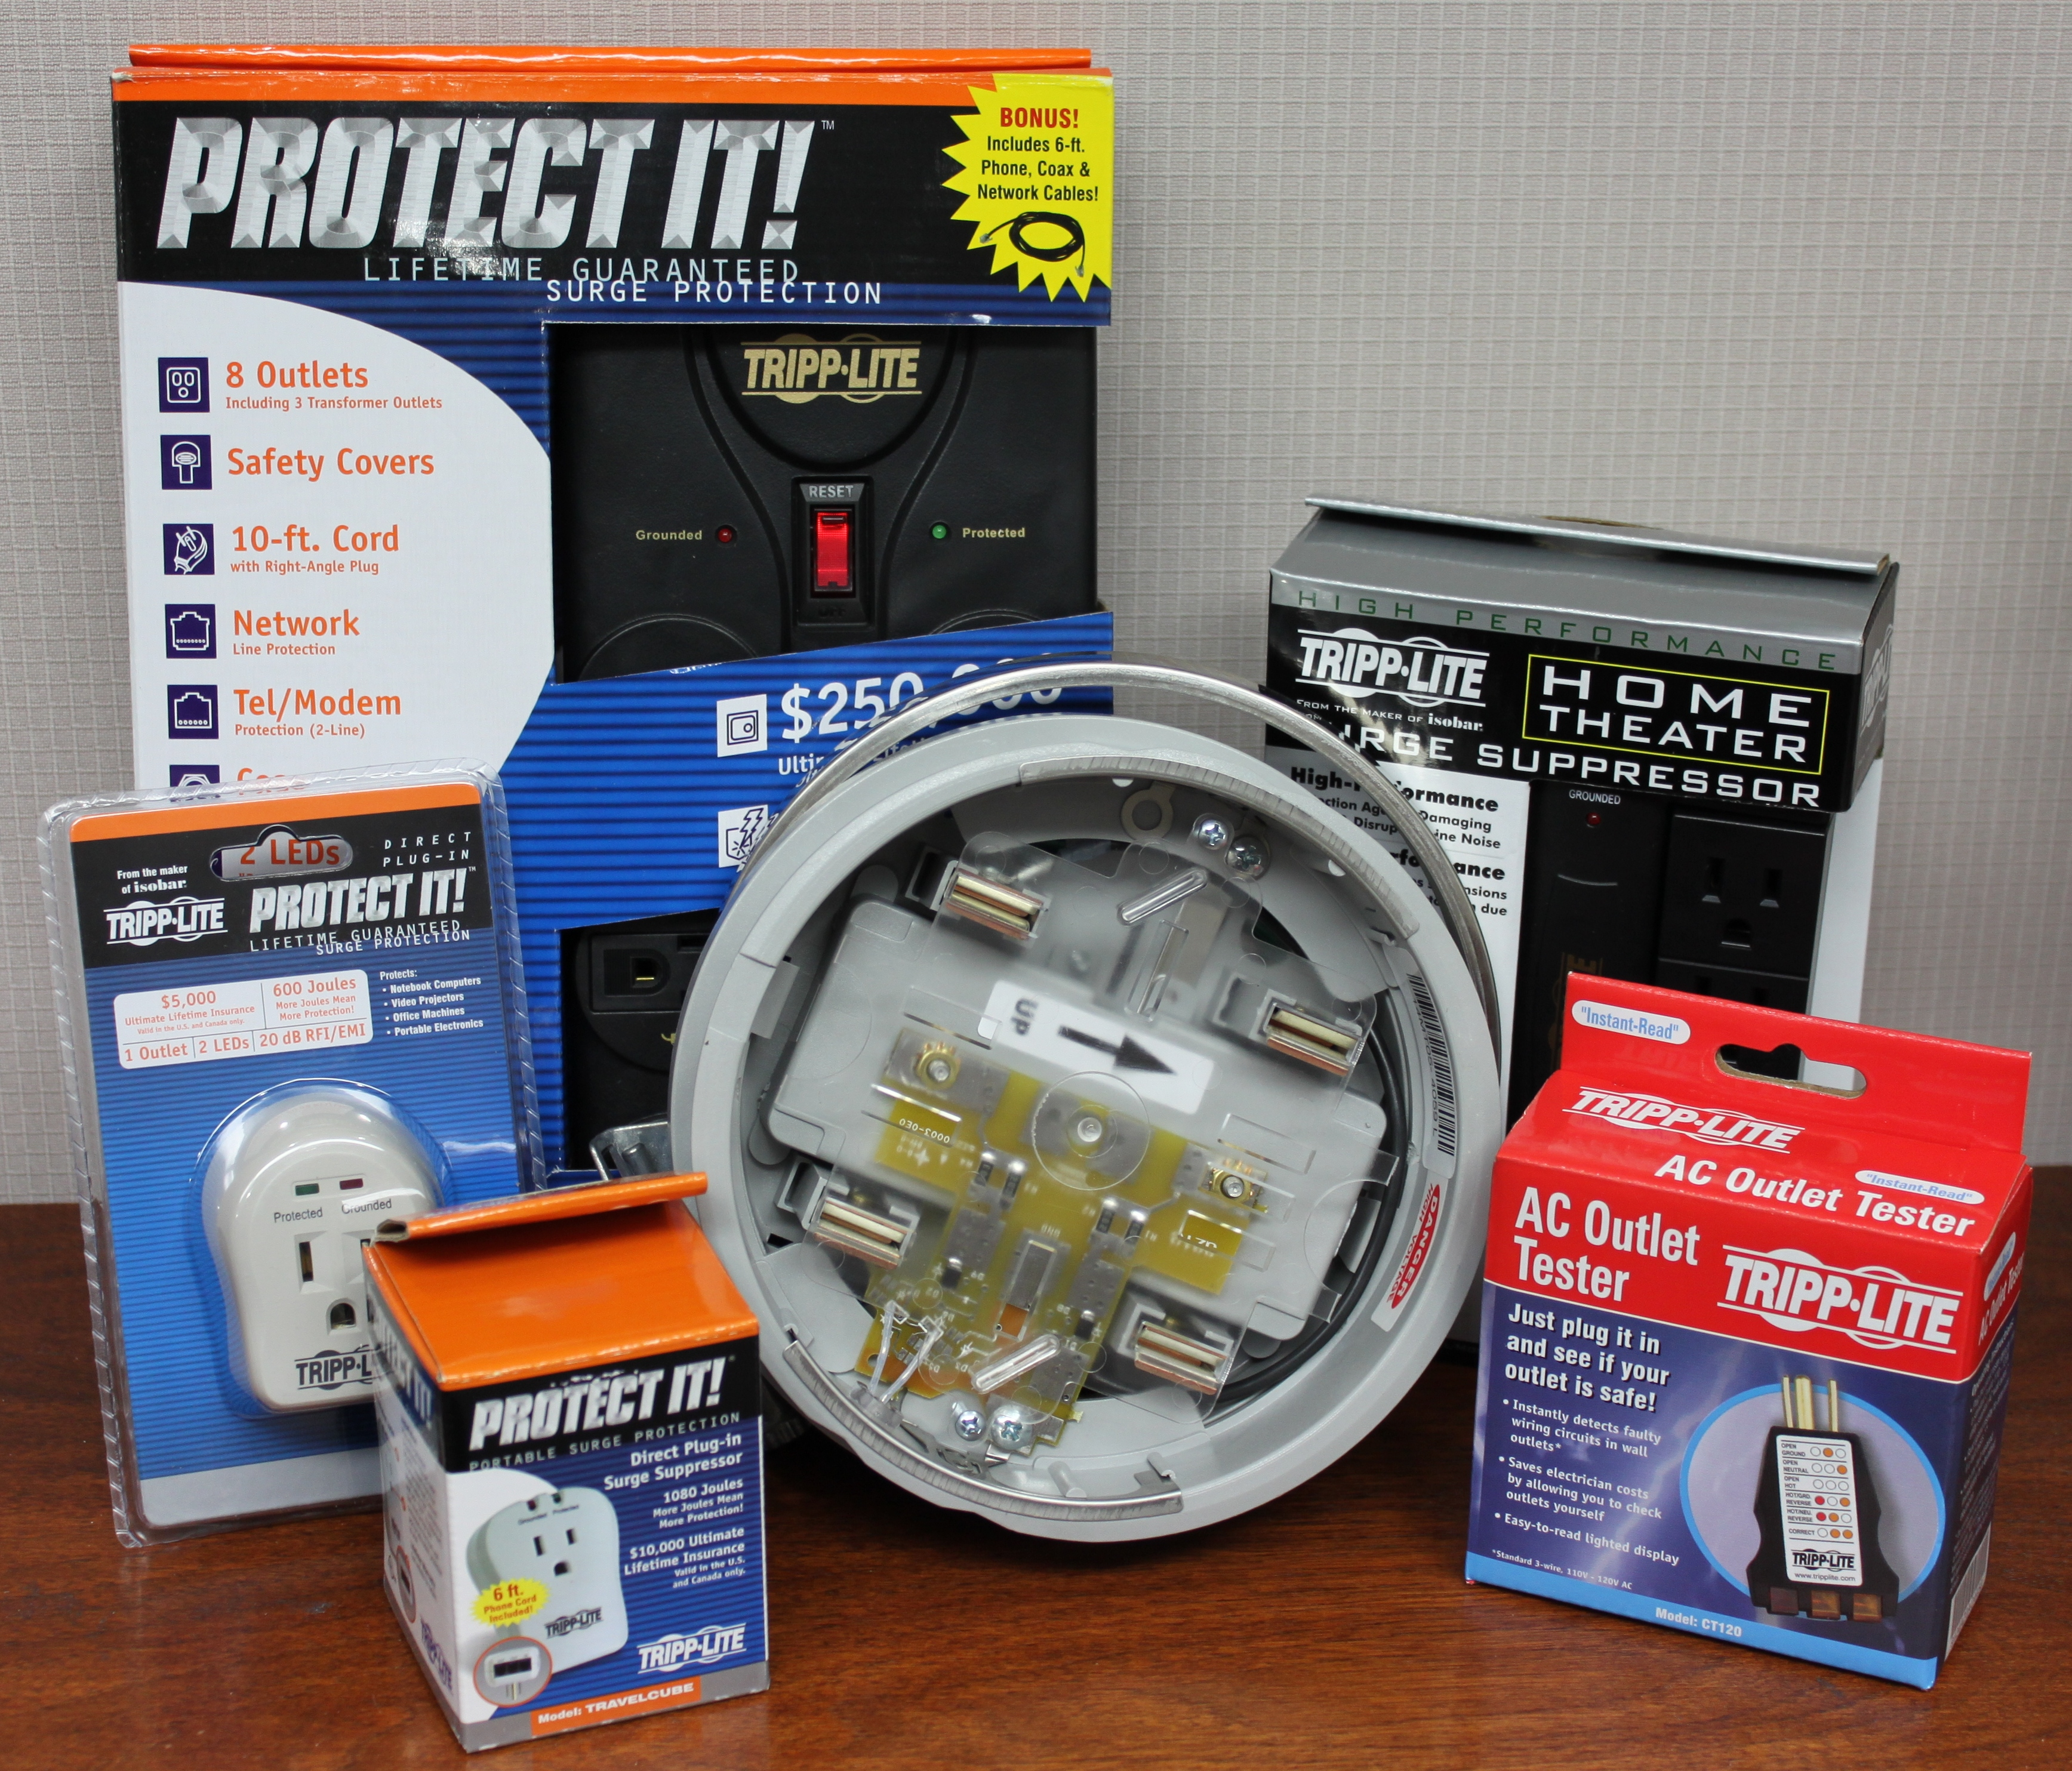 Items included in the surge protection kit